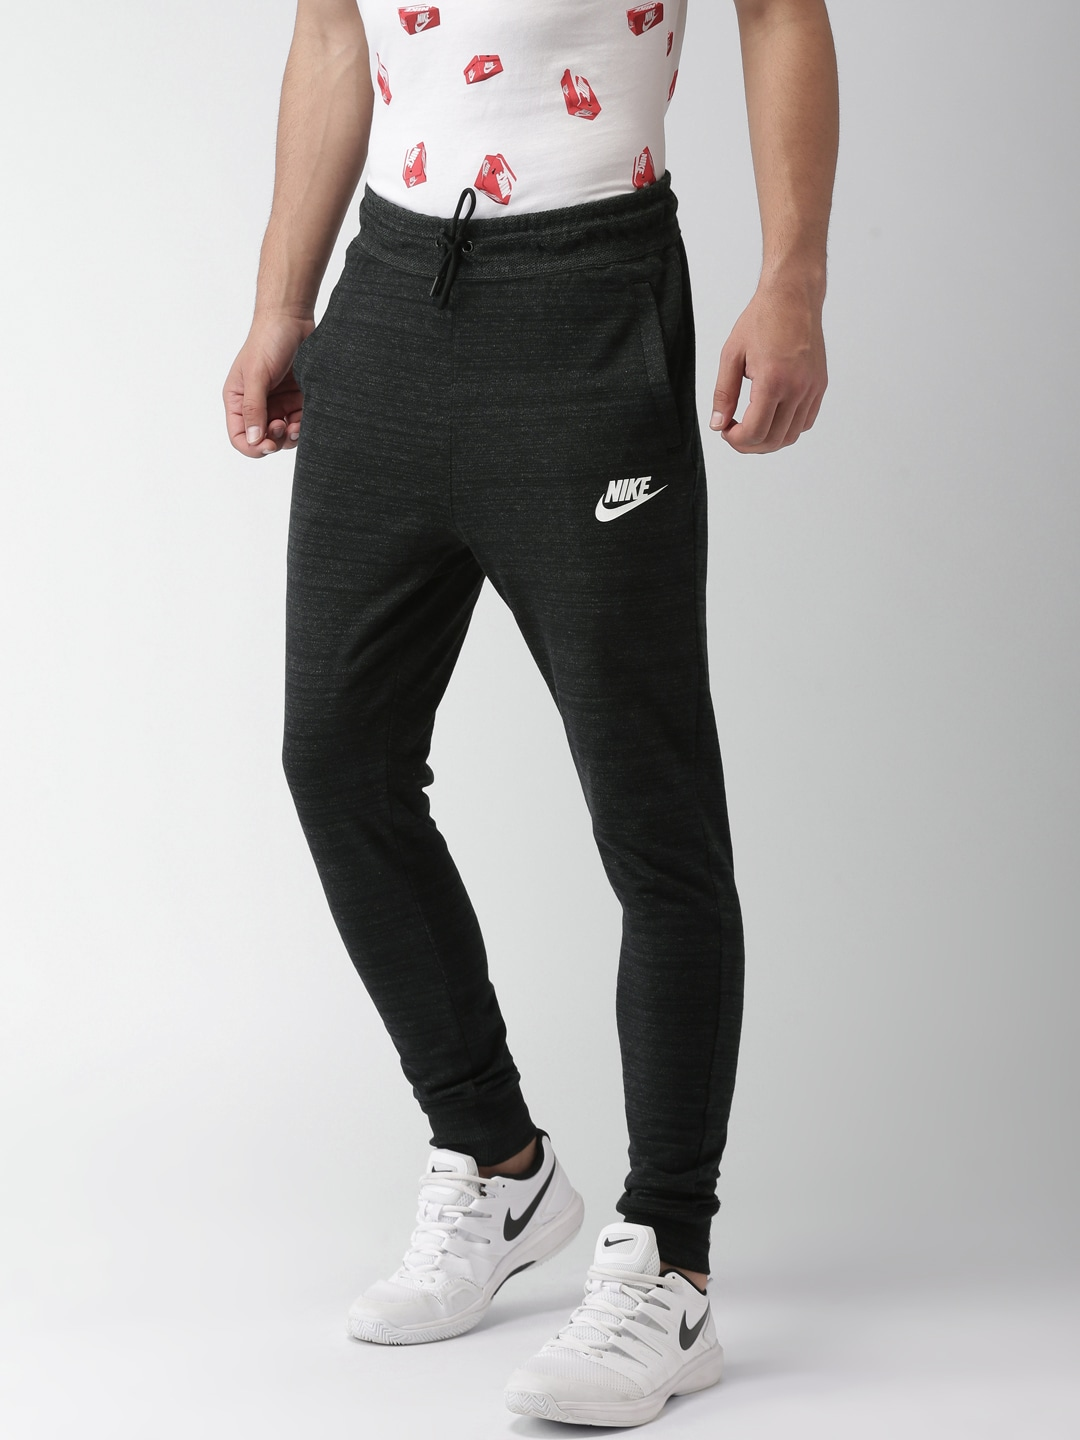 a0a684893358c Nike - Shop for Nike Apparels Online in India | Myntra